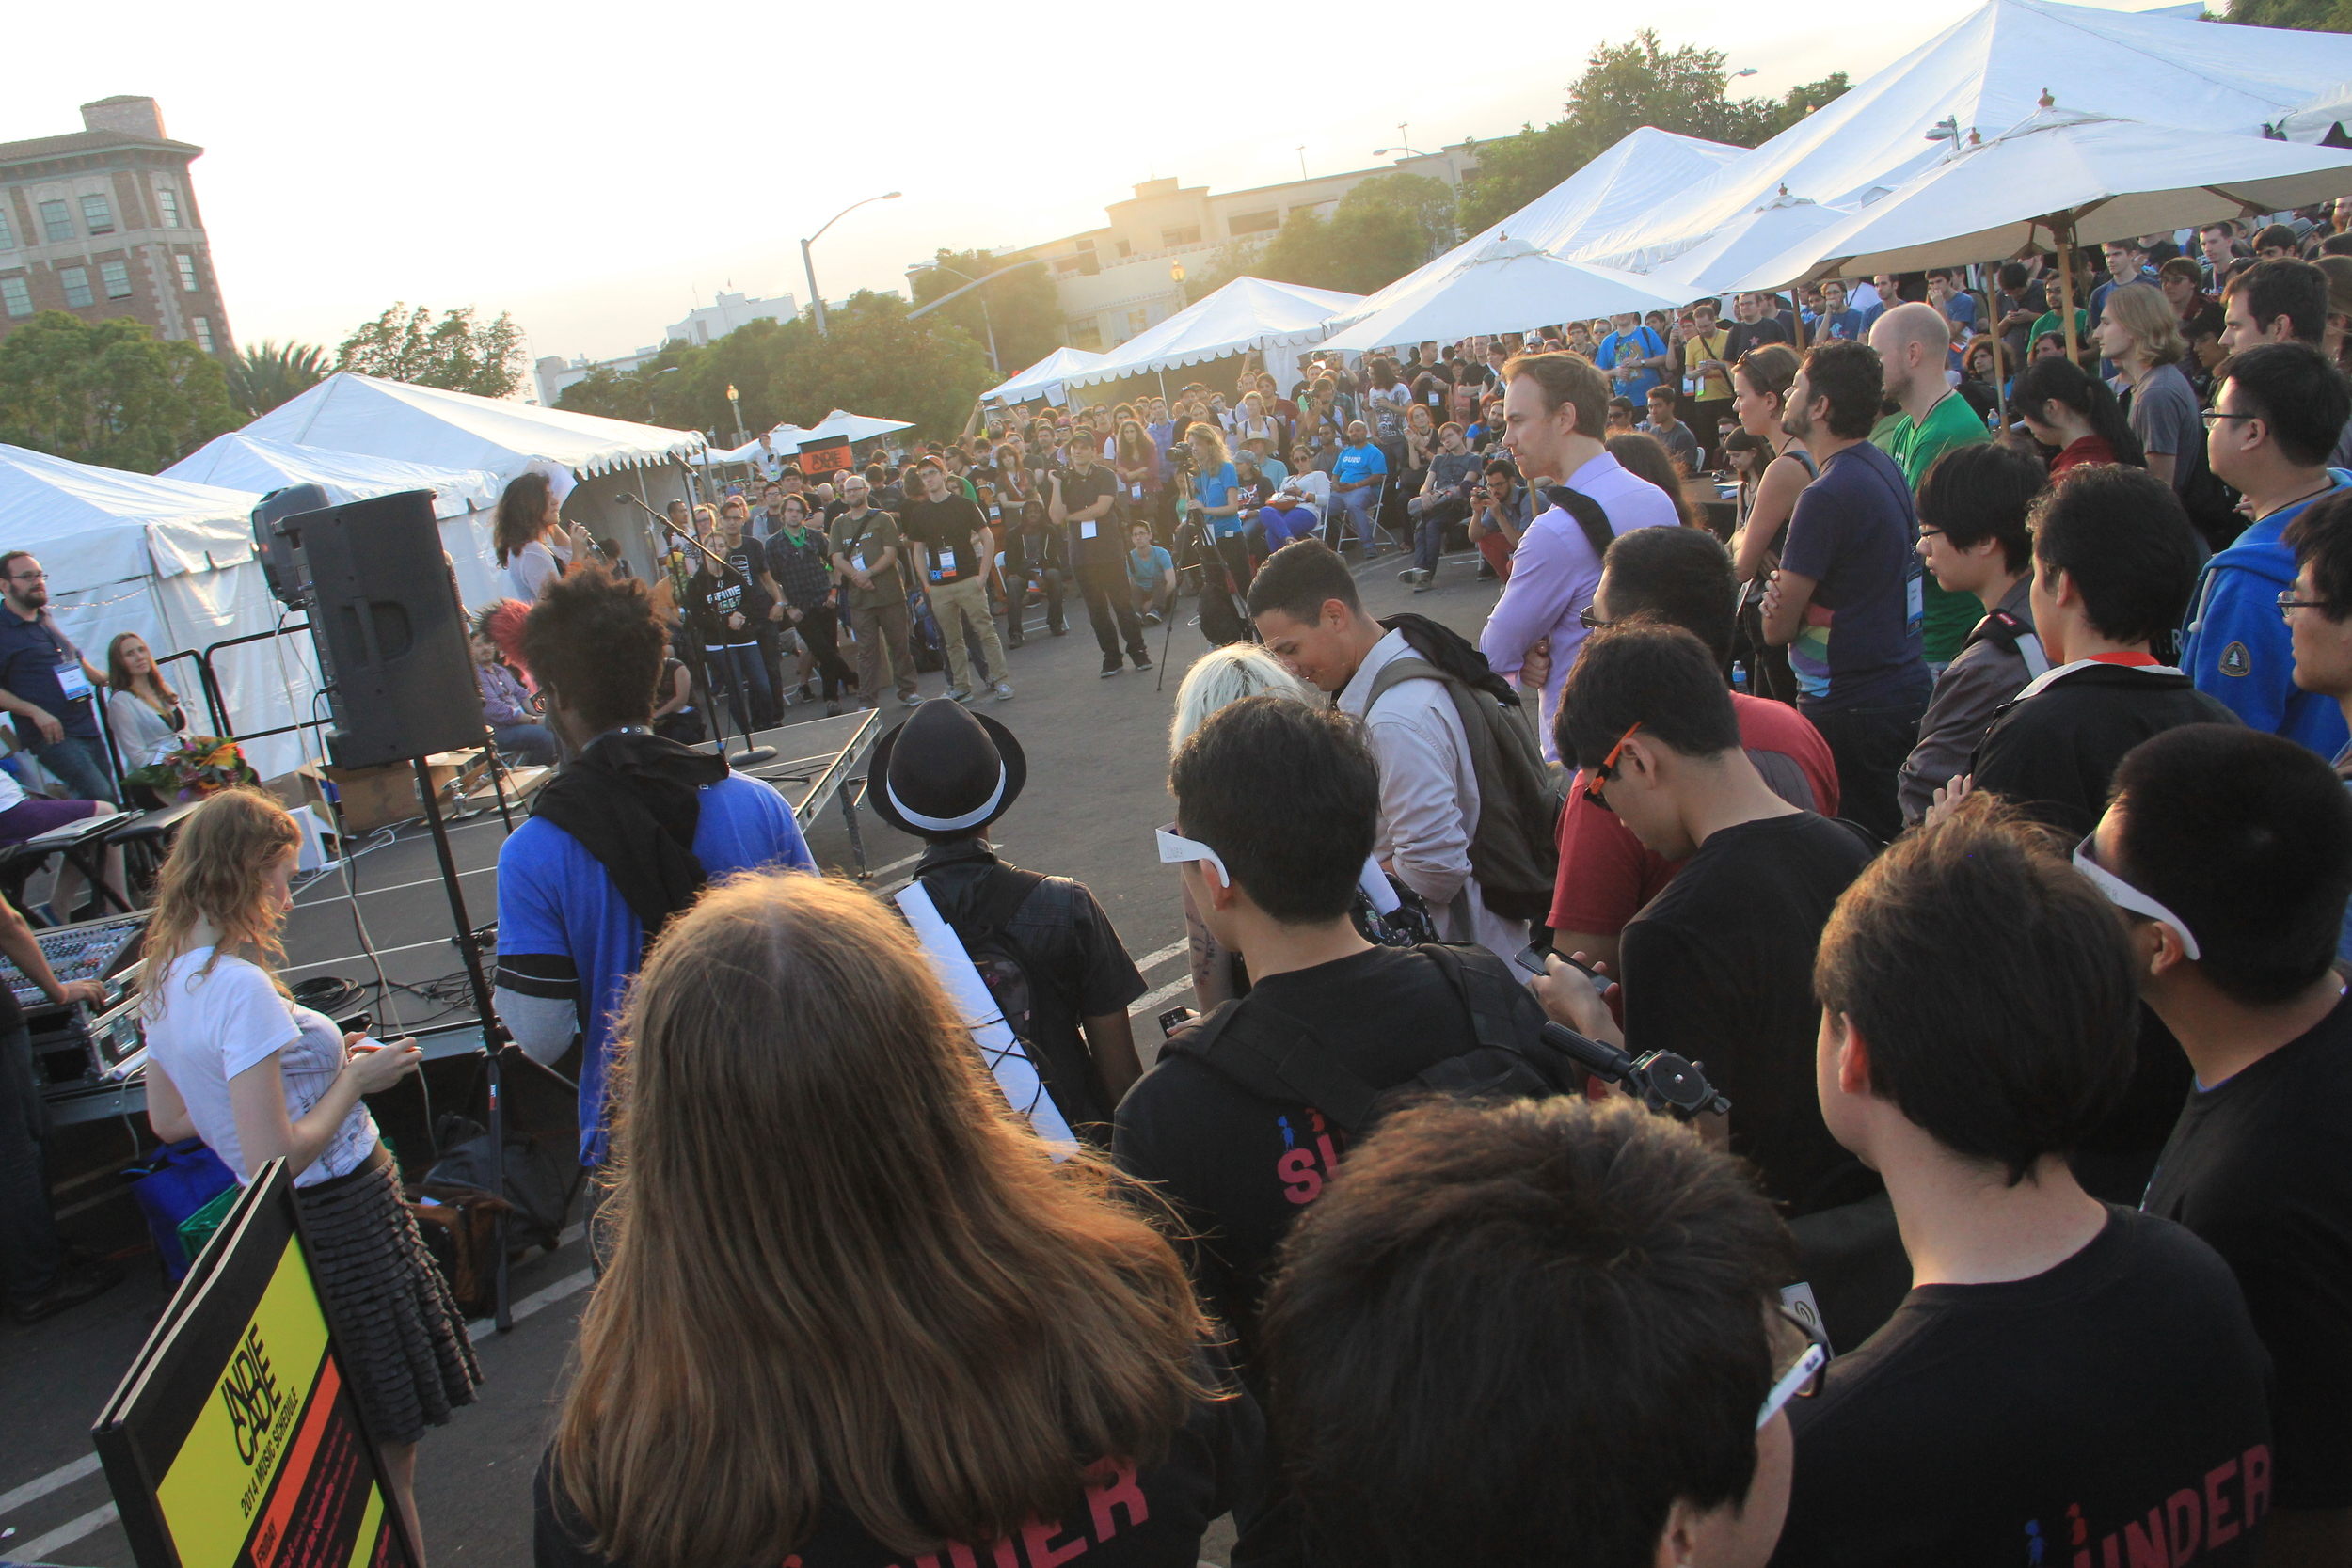 Photo of Indiecade participants by Bryant Francis.